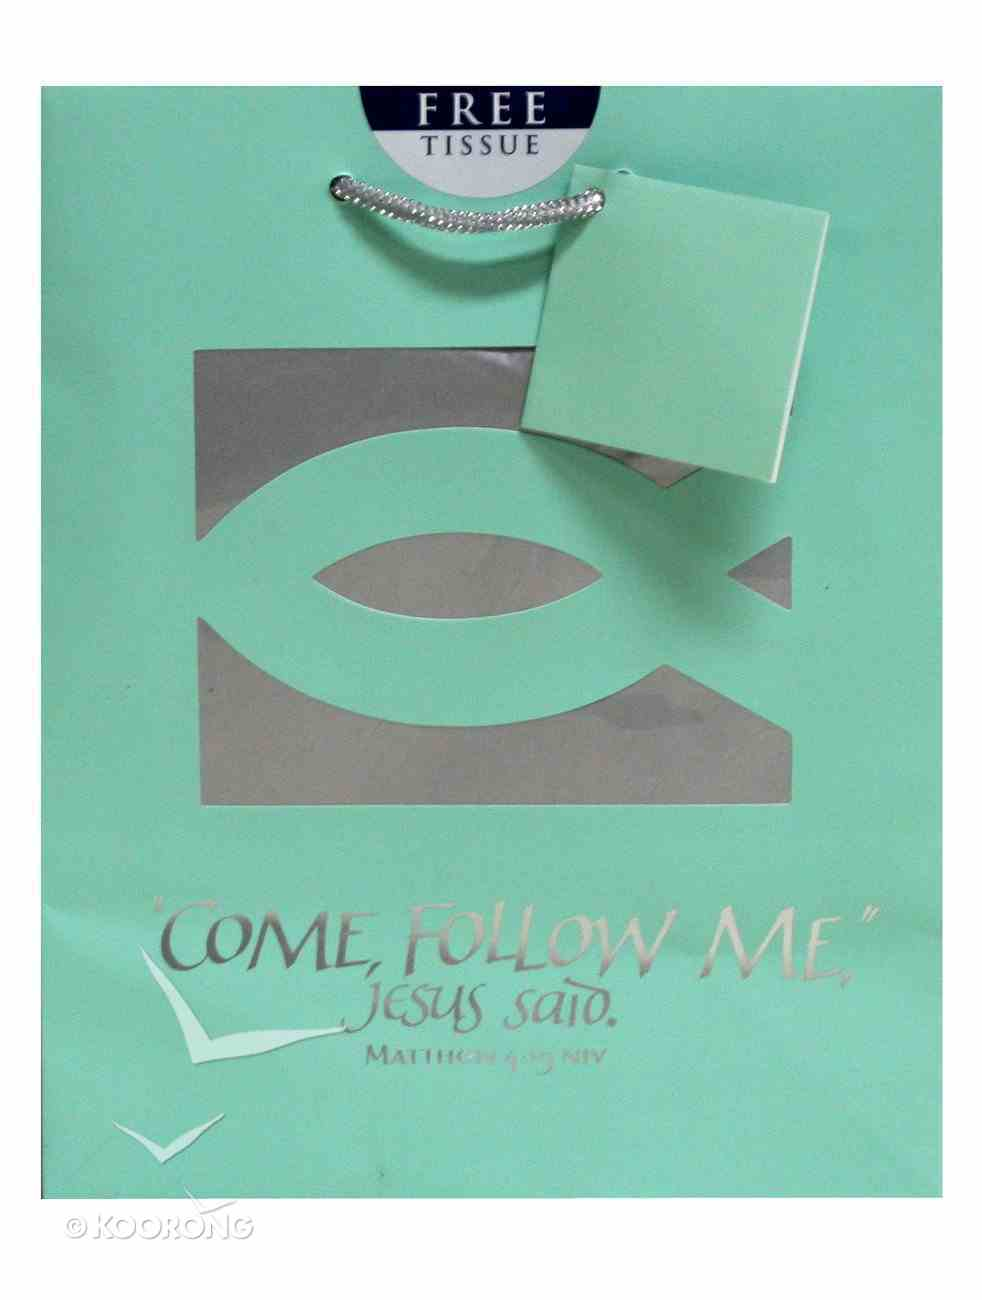 Gift Bag Medium: Come Follow Me (Incl Tissue) Stationery